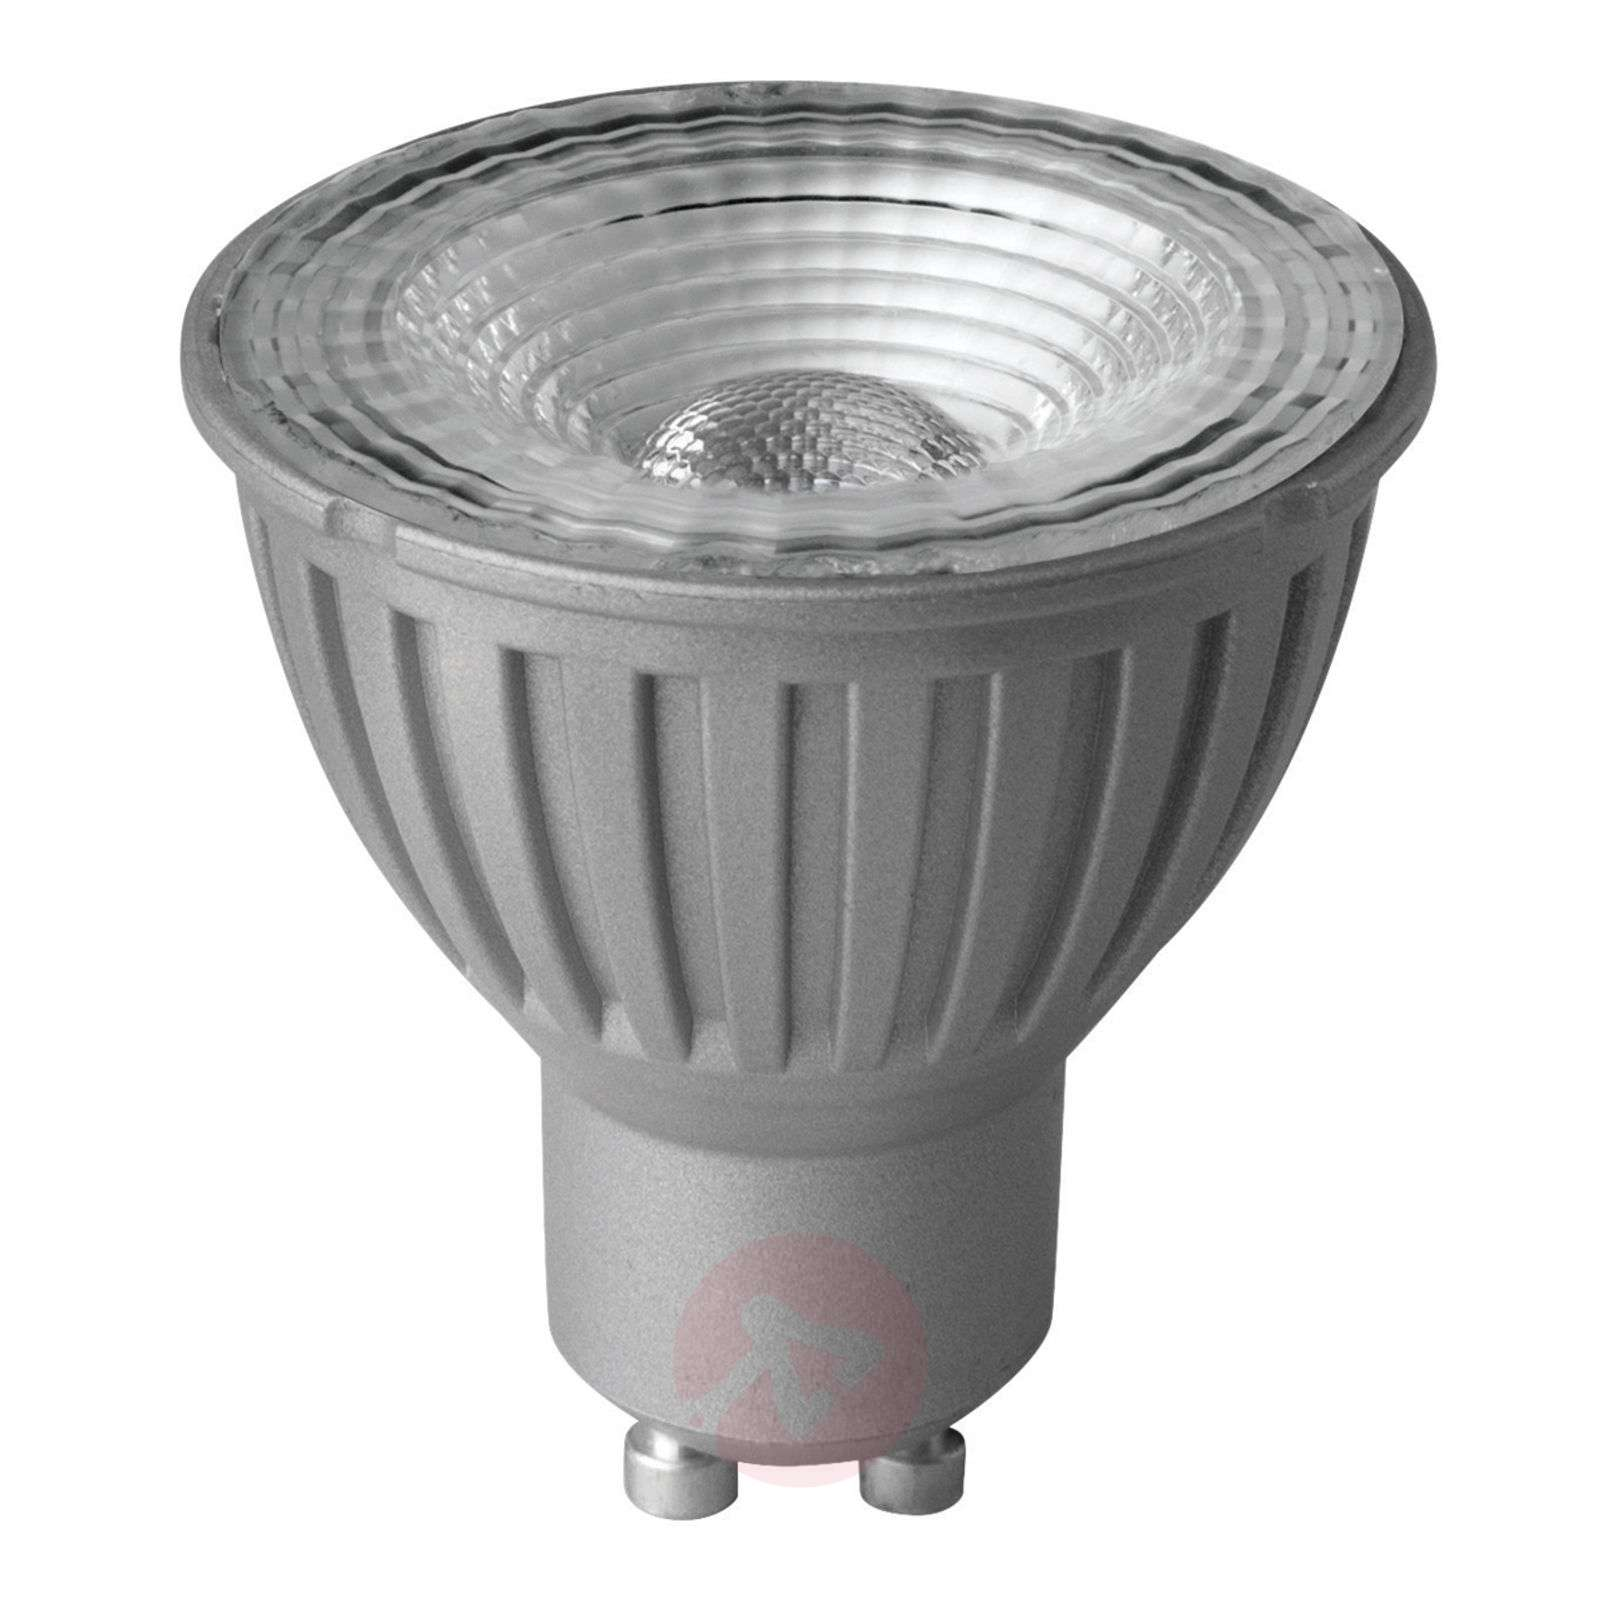 GU10 7 W 928 LED reflector bulb 35degree-6530218-01